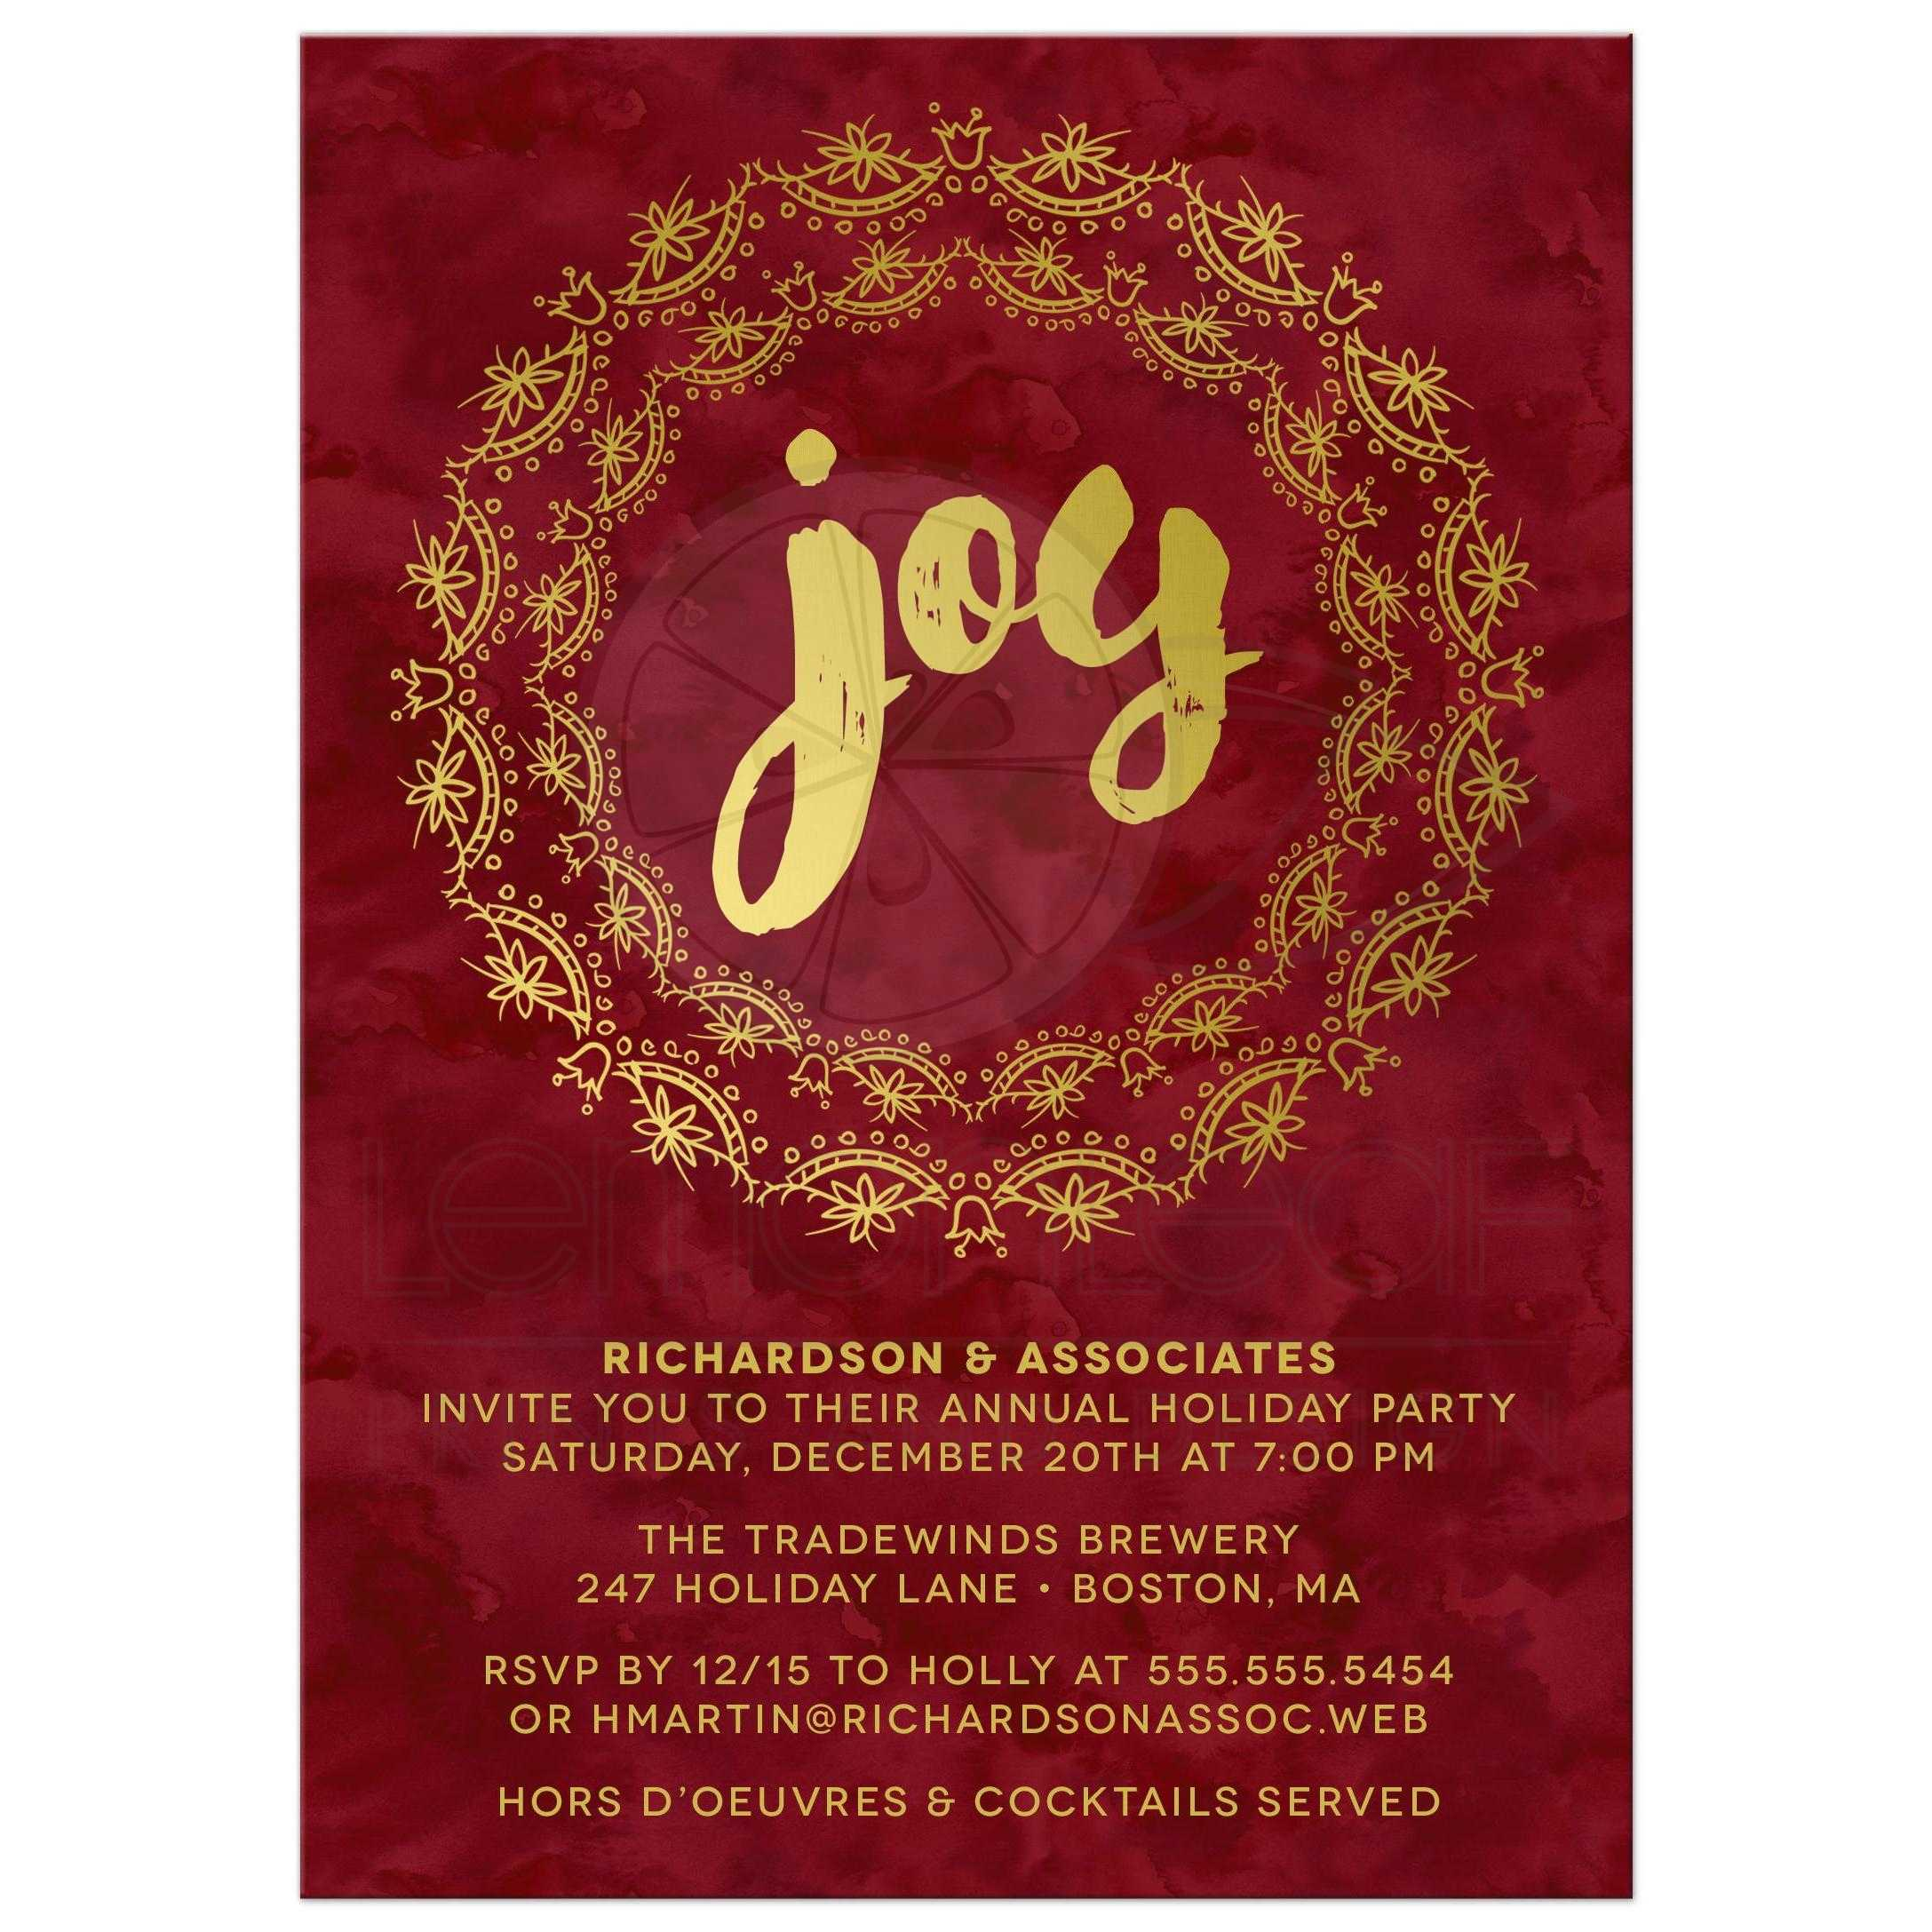 Corporate Holiday Party Invitations - Gilded Joy